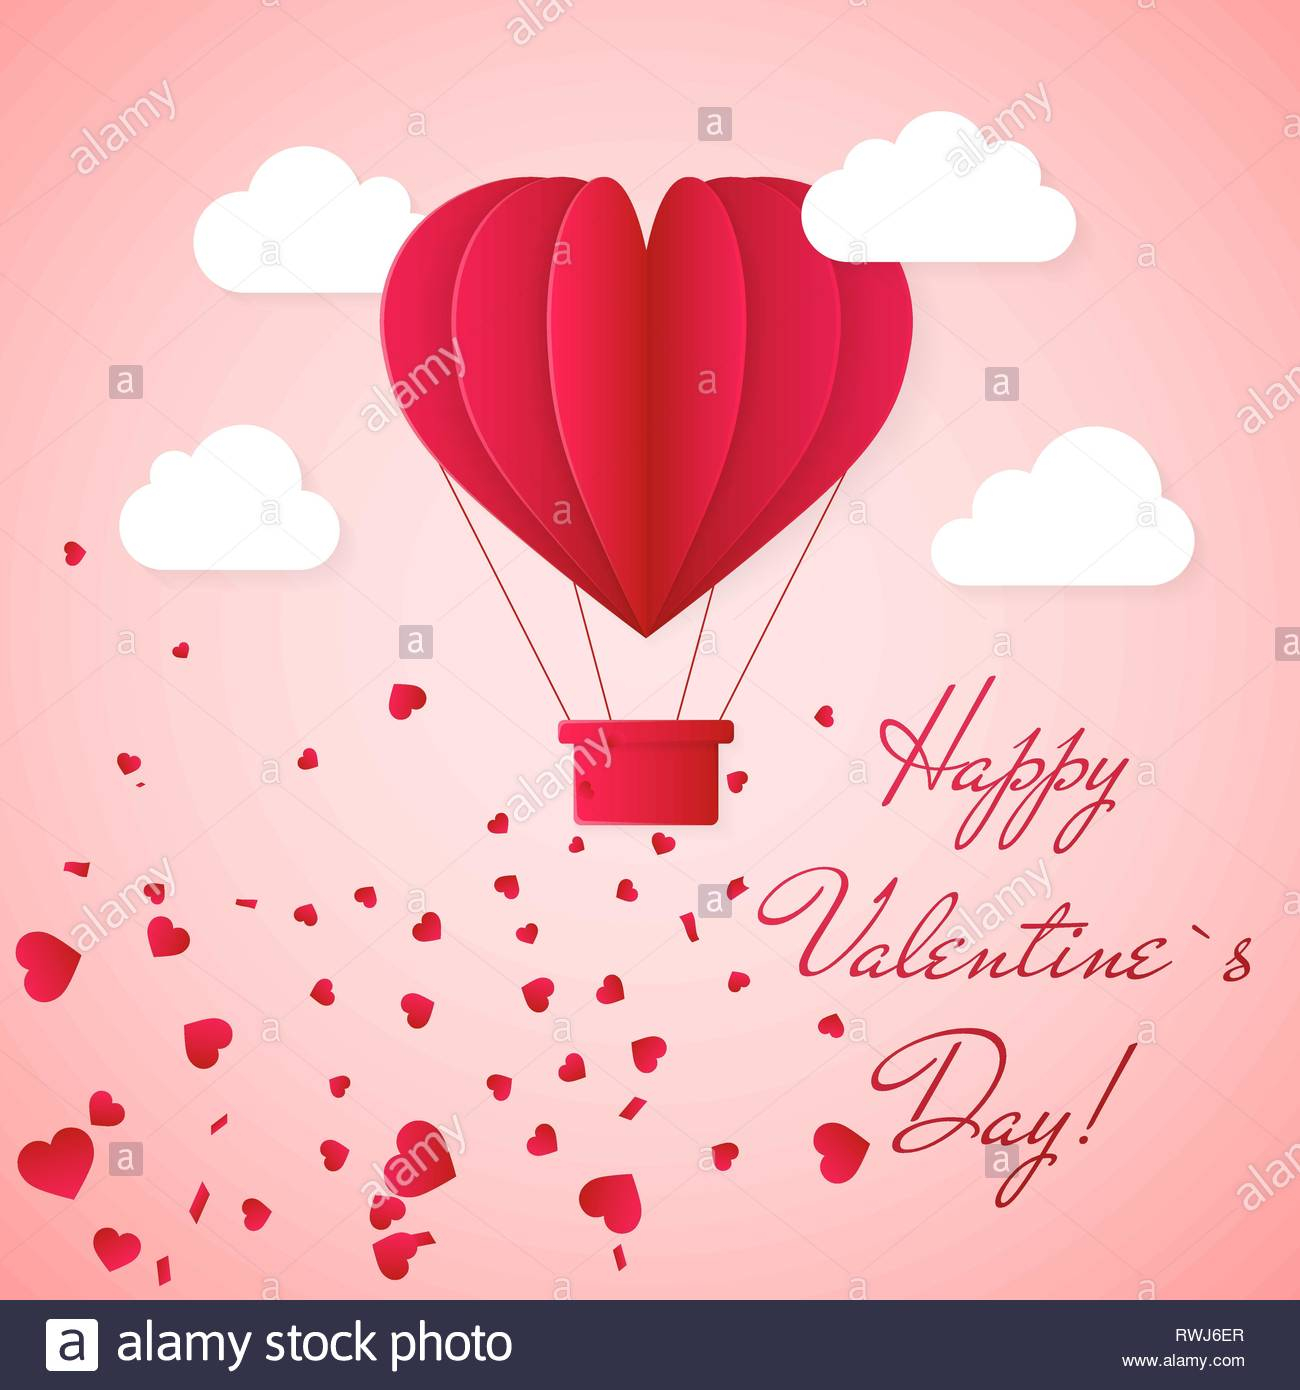 happy valentines day invitation card template with red origami paper hot air balloon in heart shape white clouds and confetti pink background vecto RWJ6ER